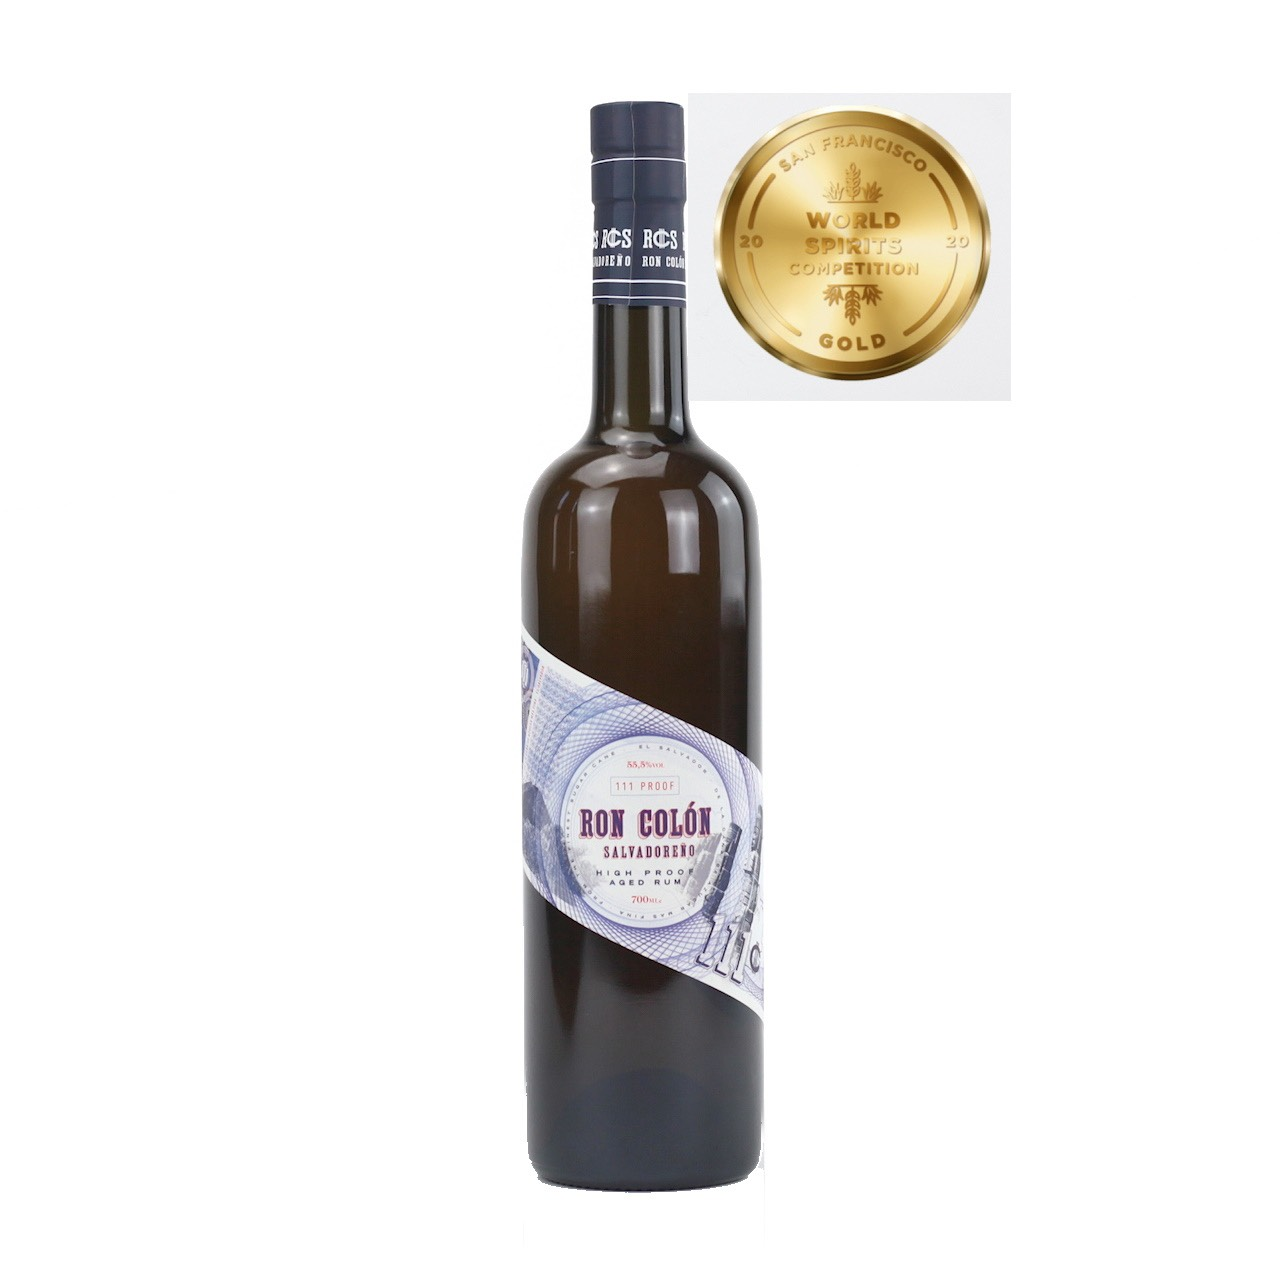 Bottle image of Ron Colon High Proof